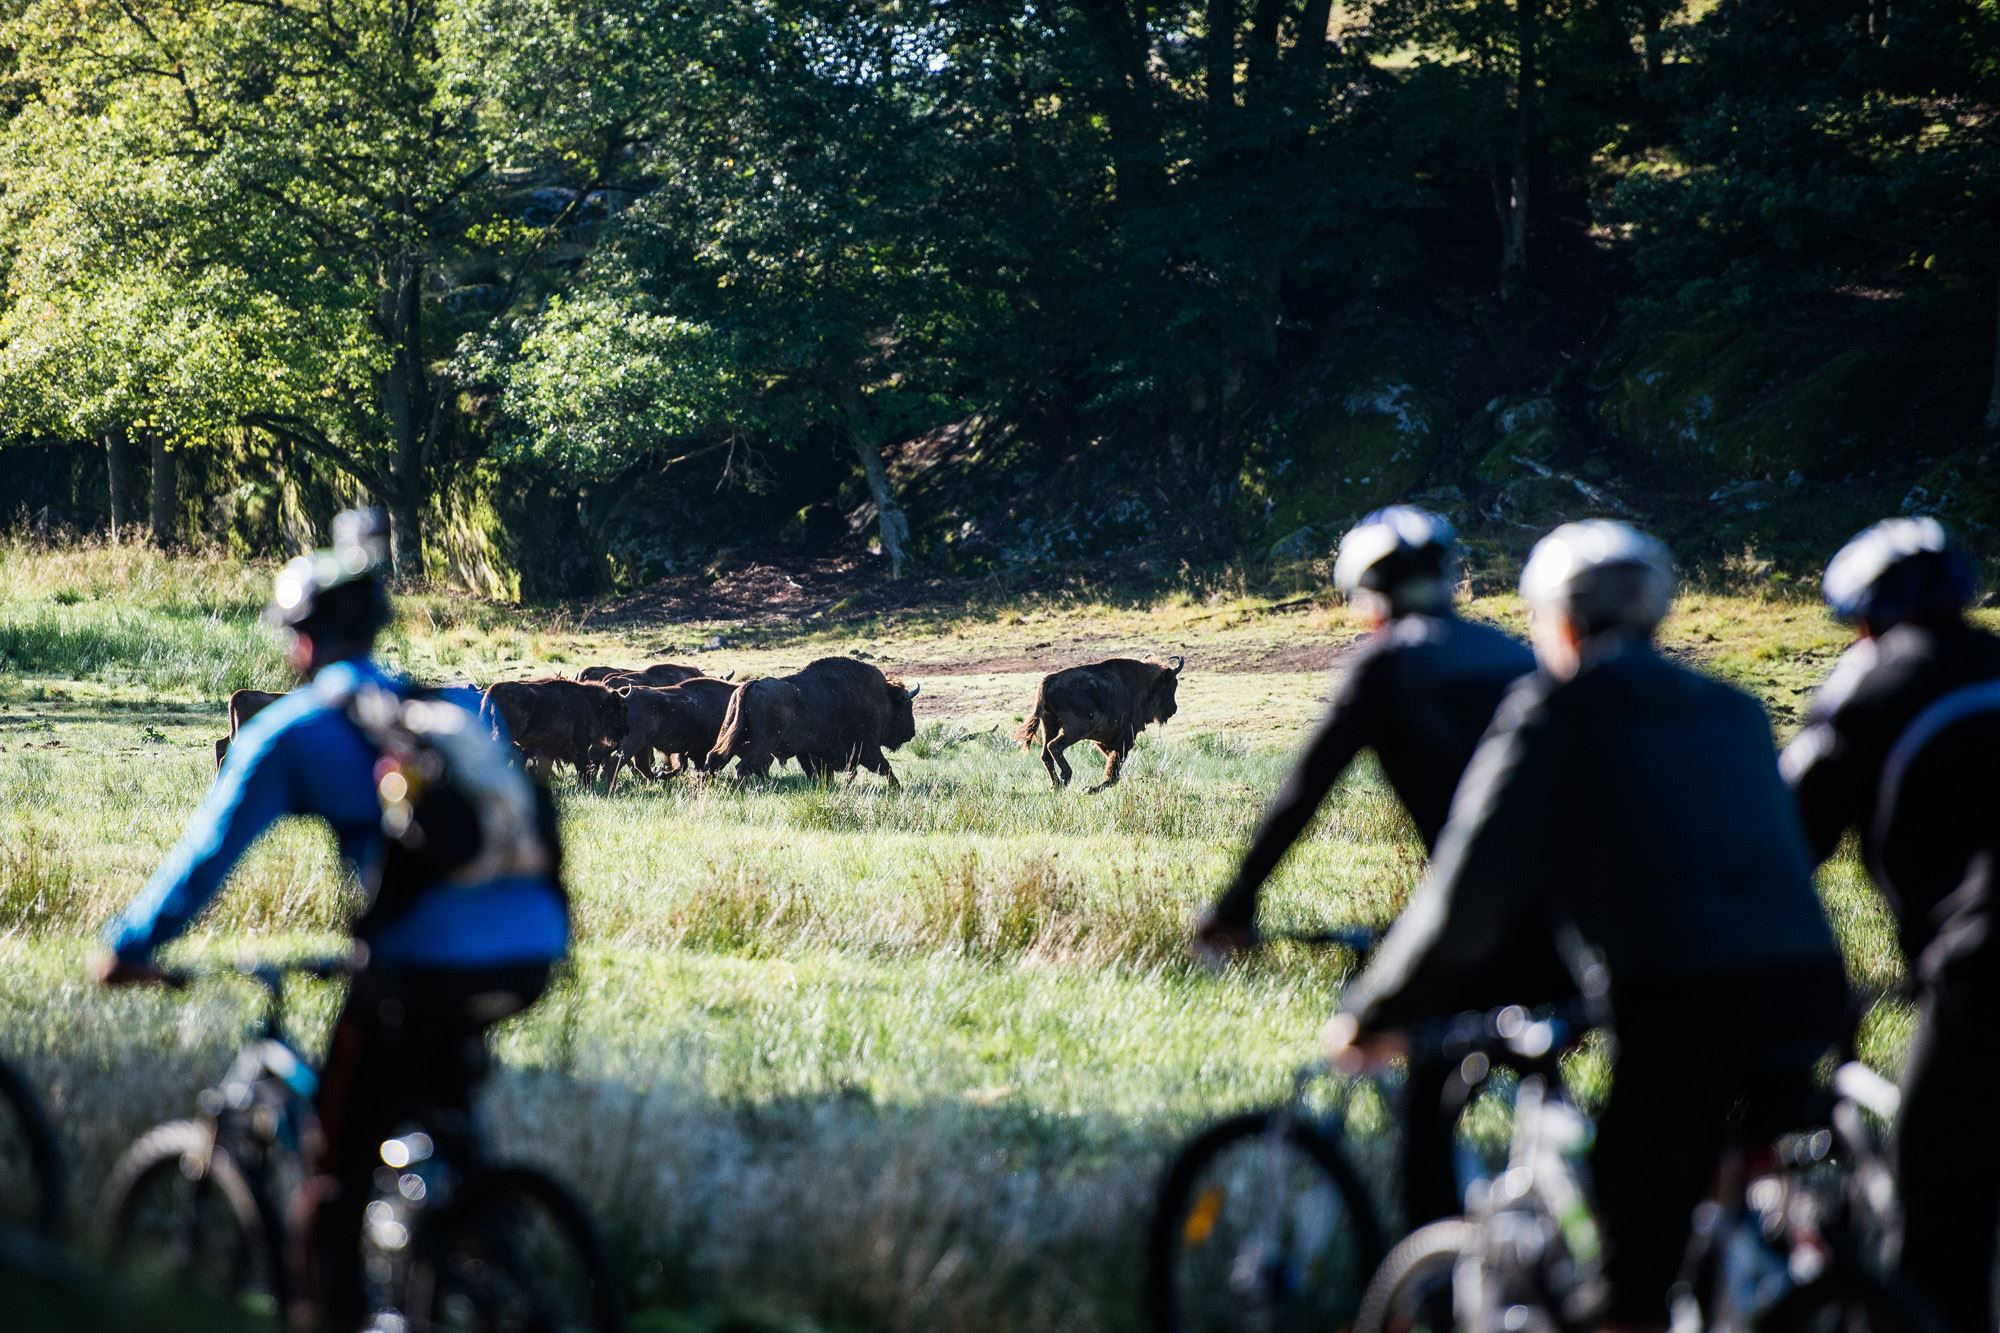 Bike Safari among wild animals